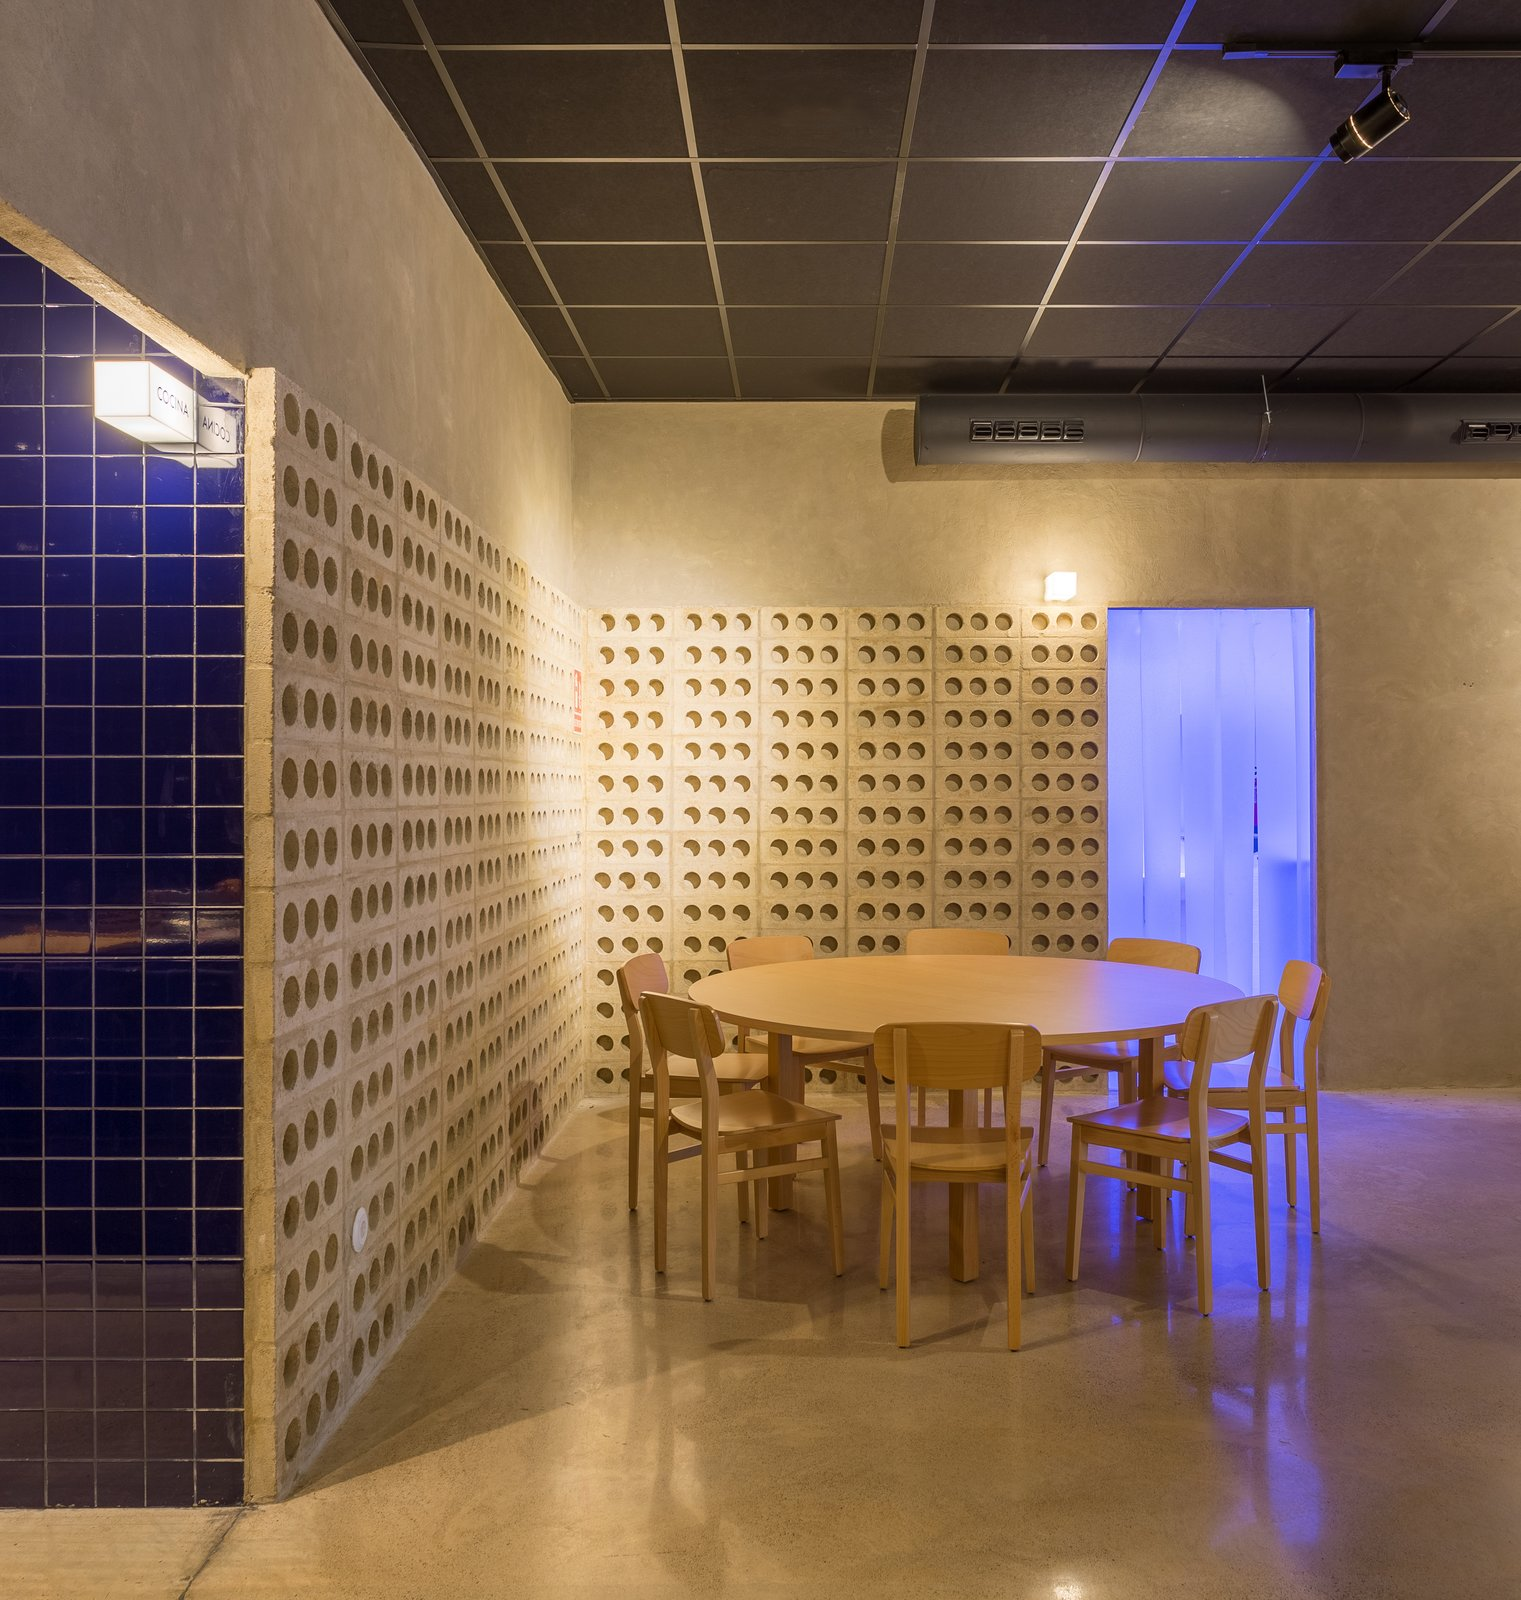 Dining Room, Chair, Table, Accent Lighting, Wall Lighting, Concrete Floor, and Track Lighting The bathroom lighting floods the room with blue.  IMOOD Restaurant